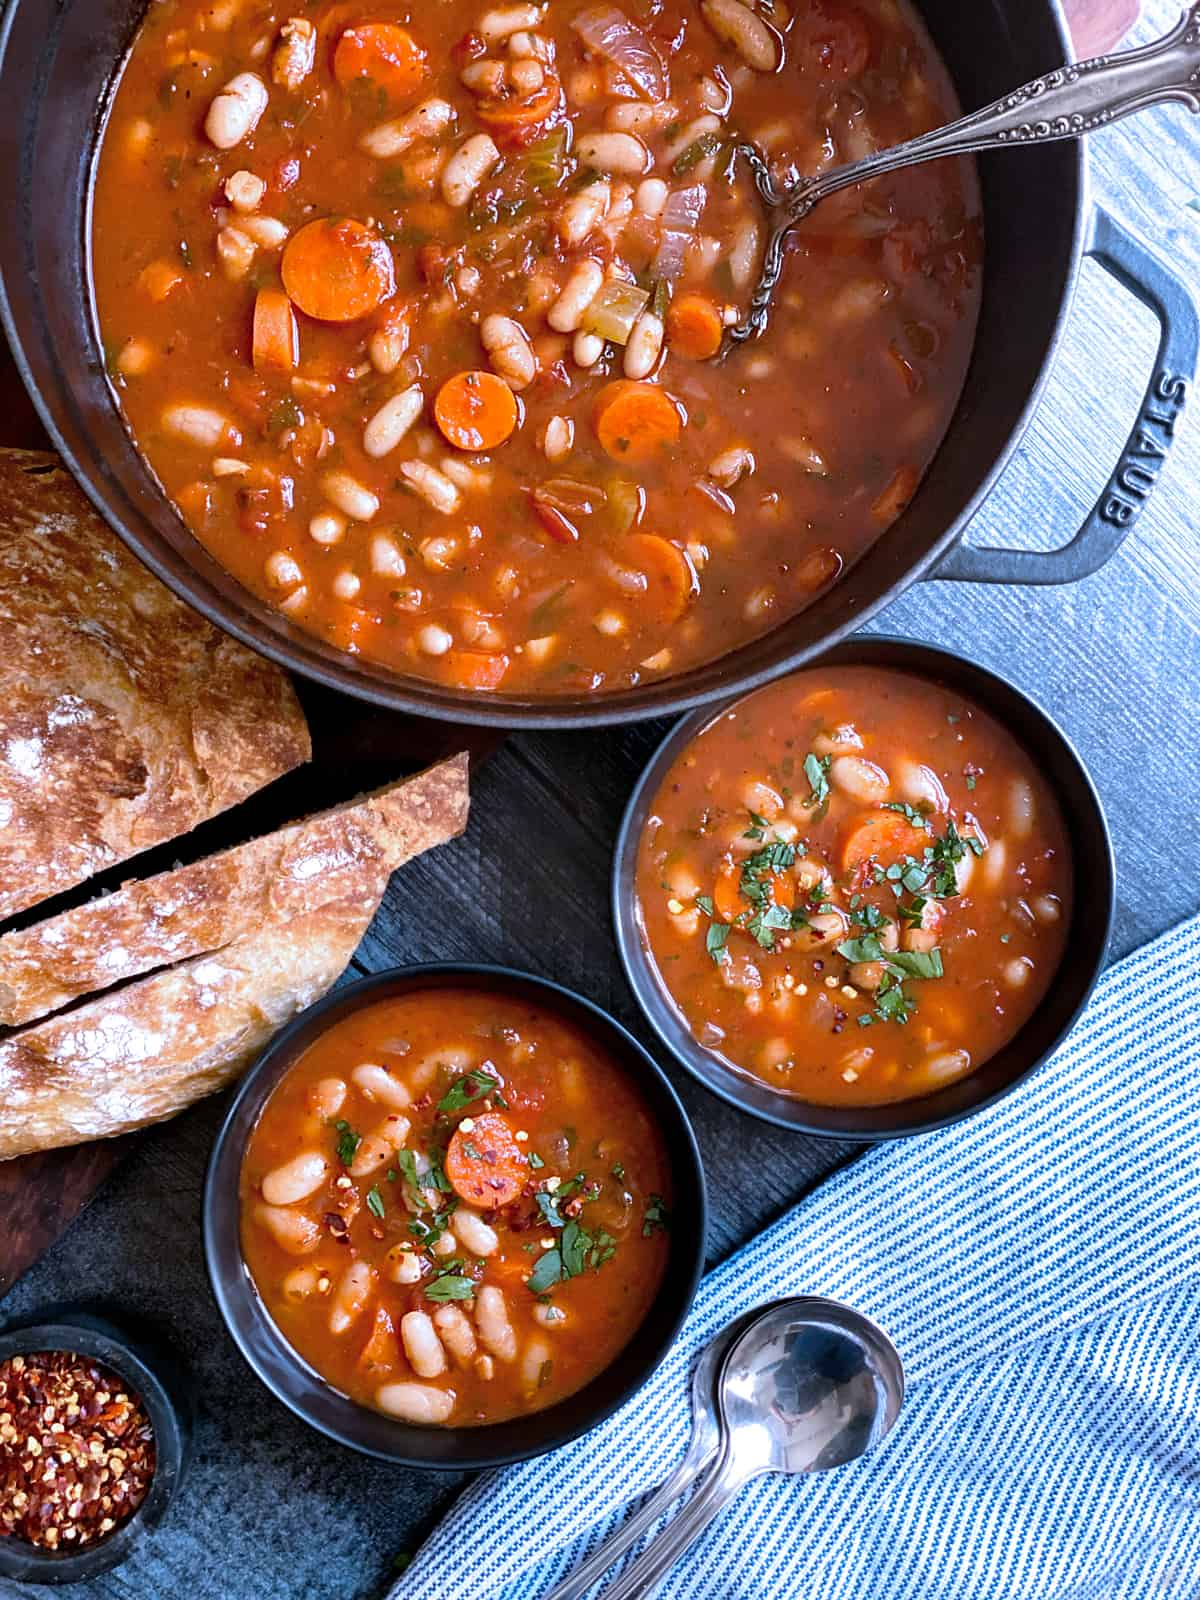 Two bowls with fasolada-greek white bean soup, bread and a pot filled with the soup.